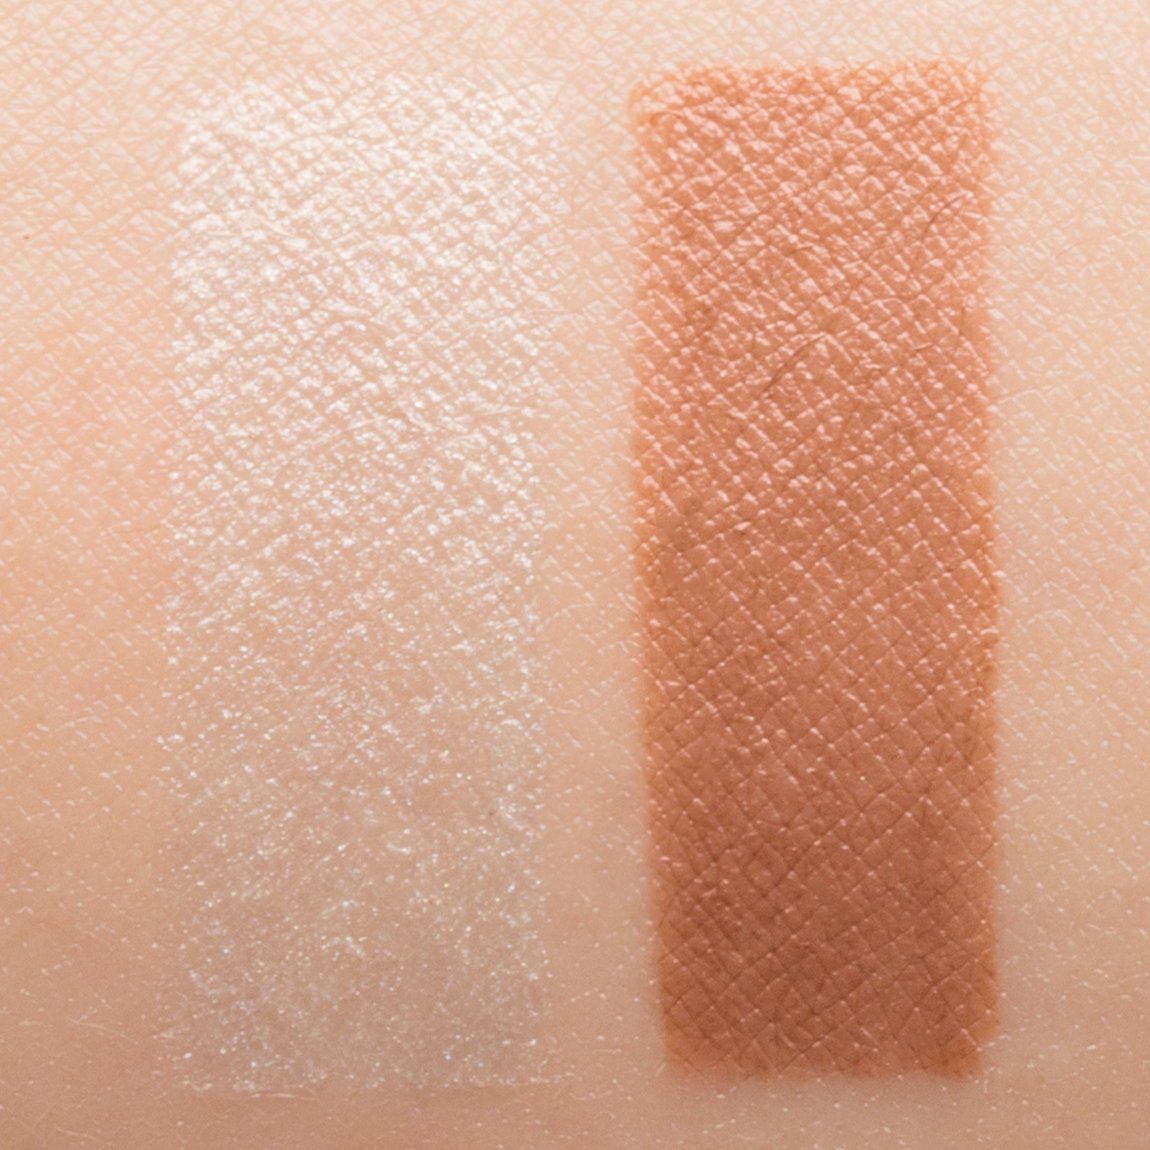 Shade and Illuminate (02 Intensity Two) by TMF Cosmetics (Image #4)